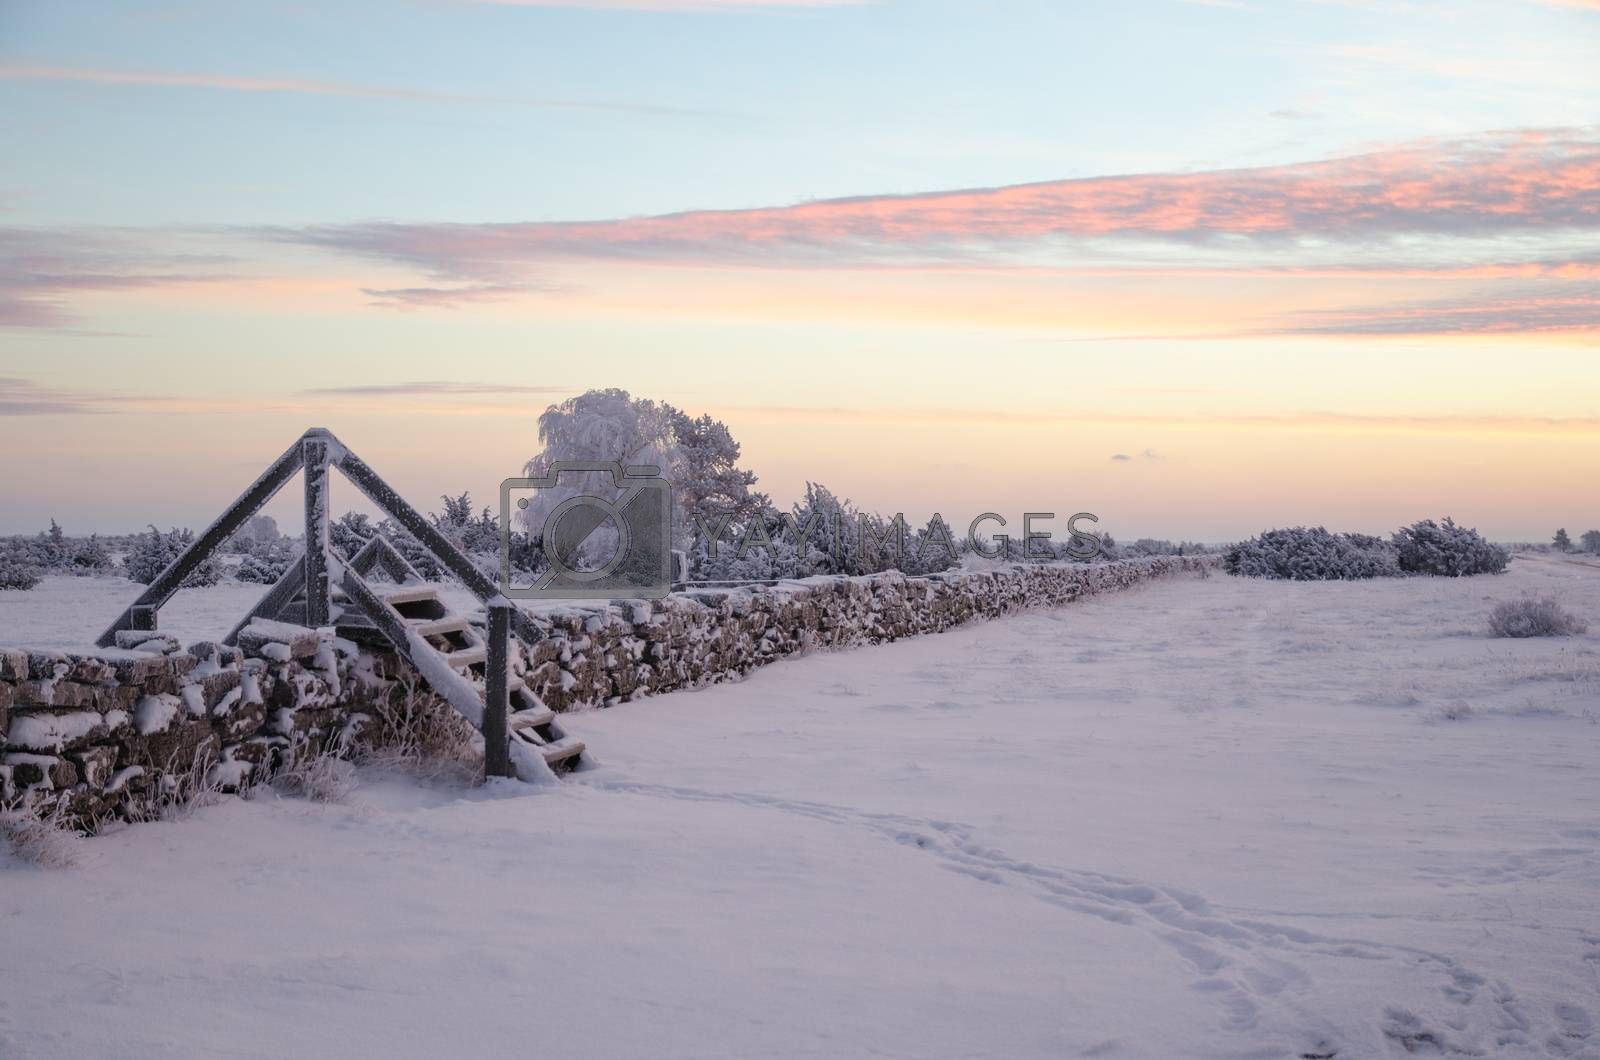 Royalty free image of Dawn at a winterland with a stile by olandsfokus